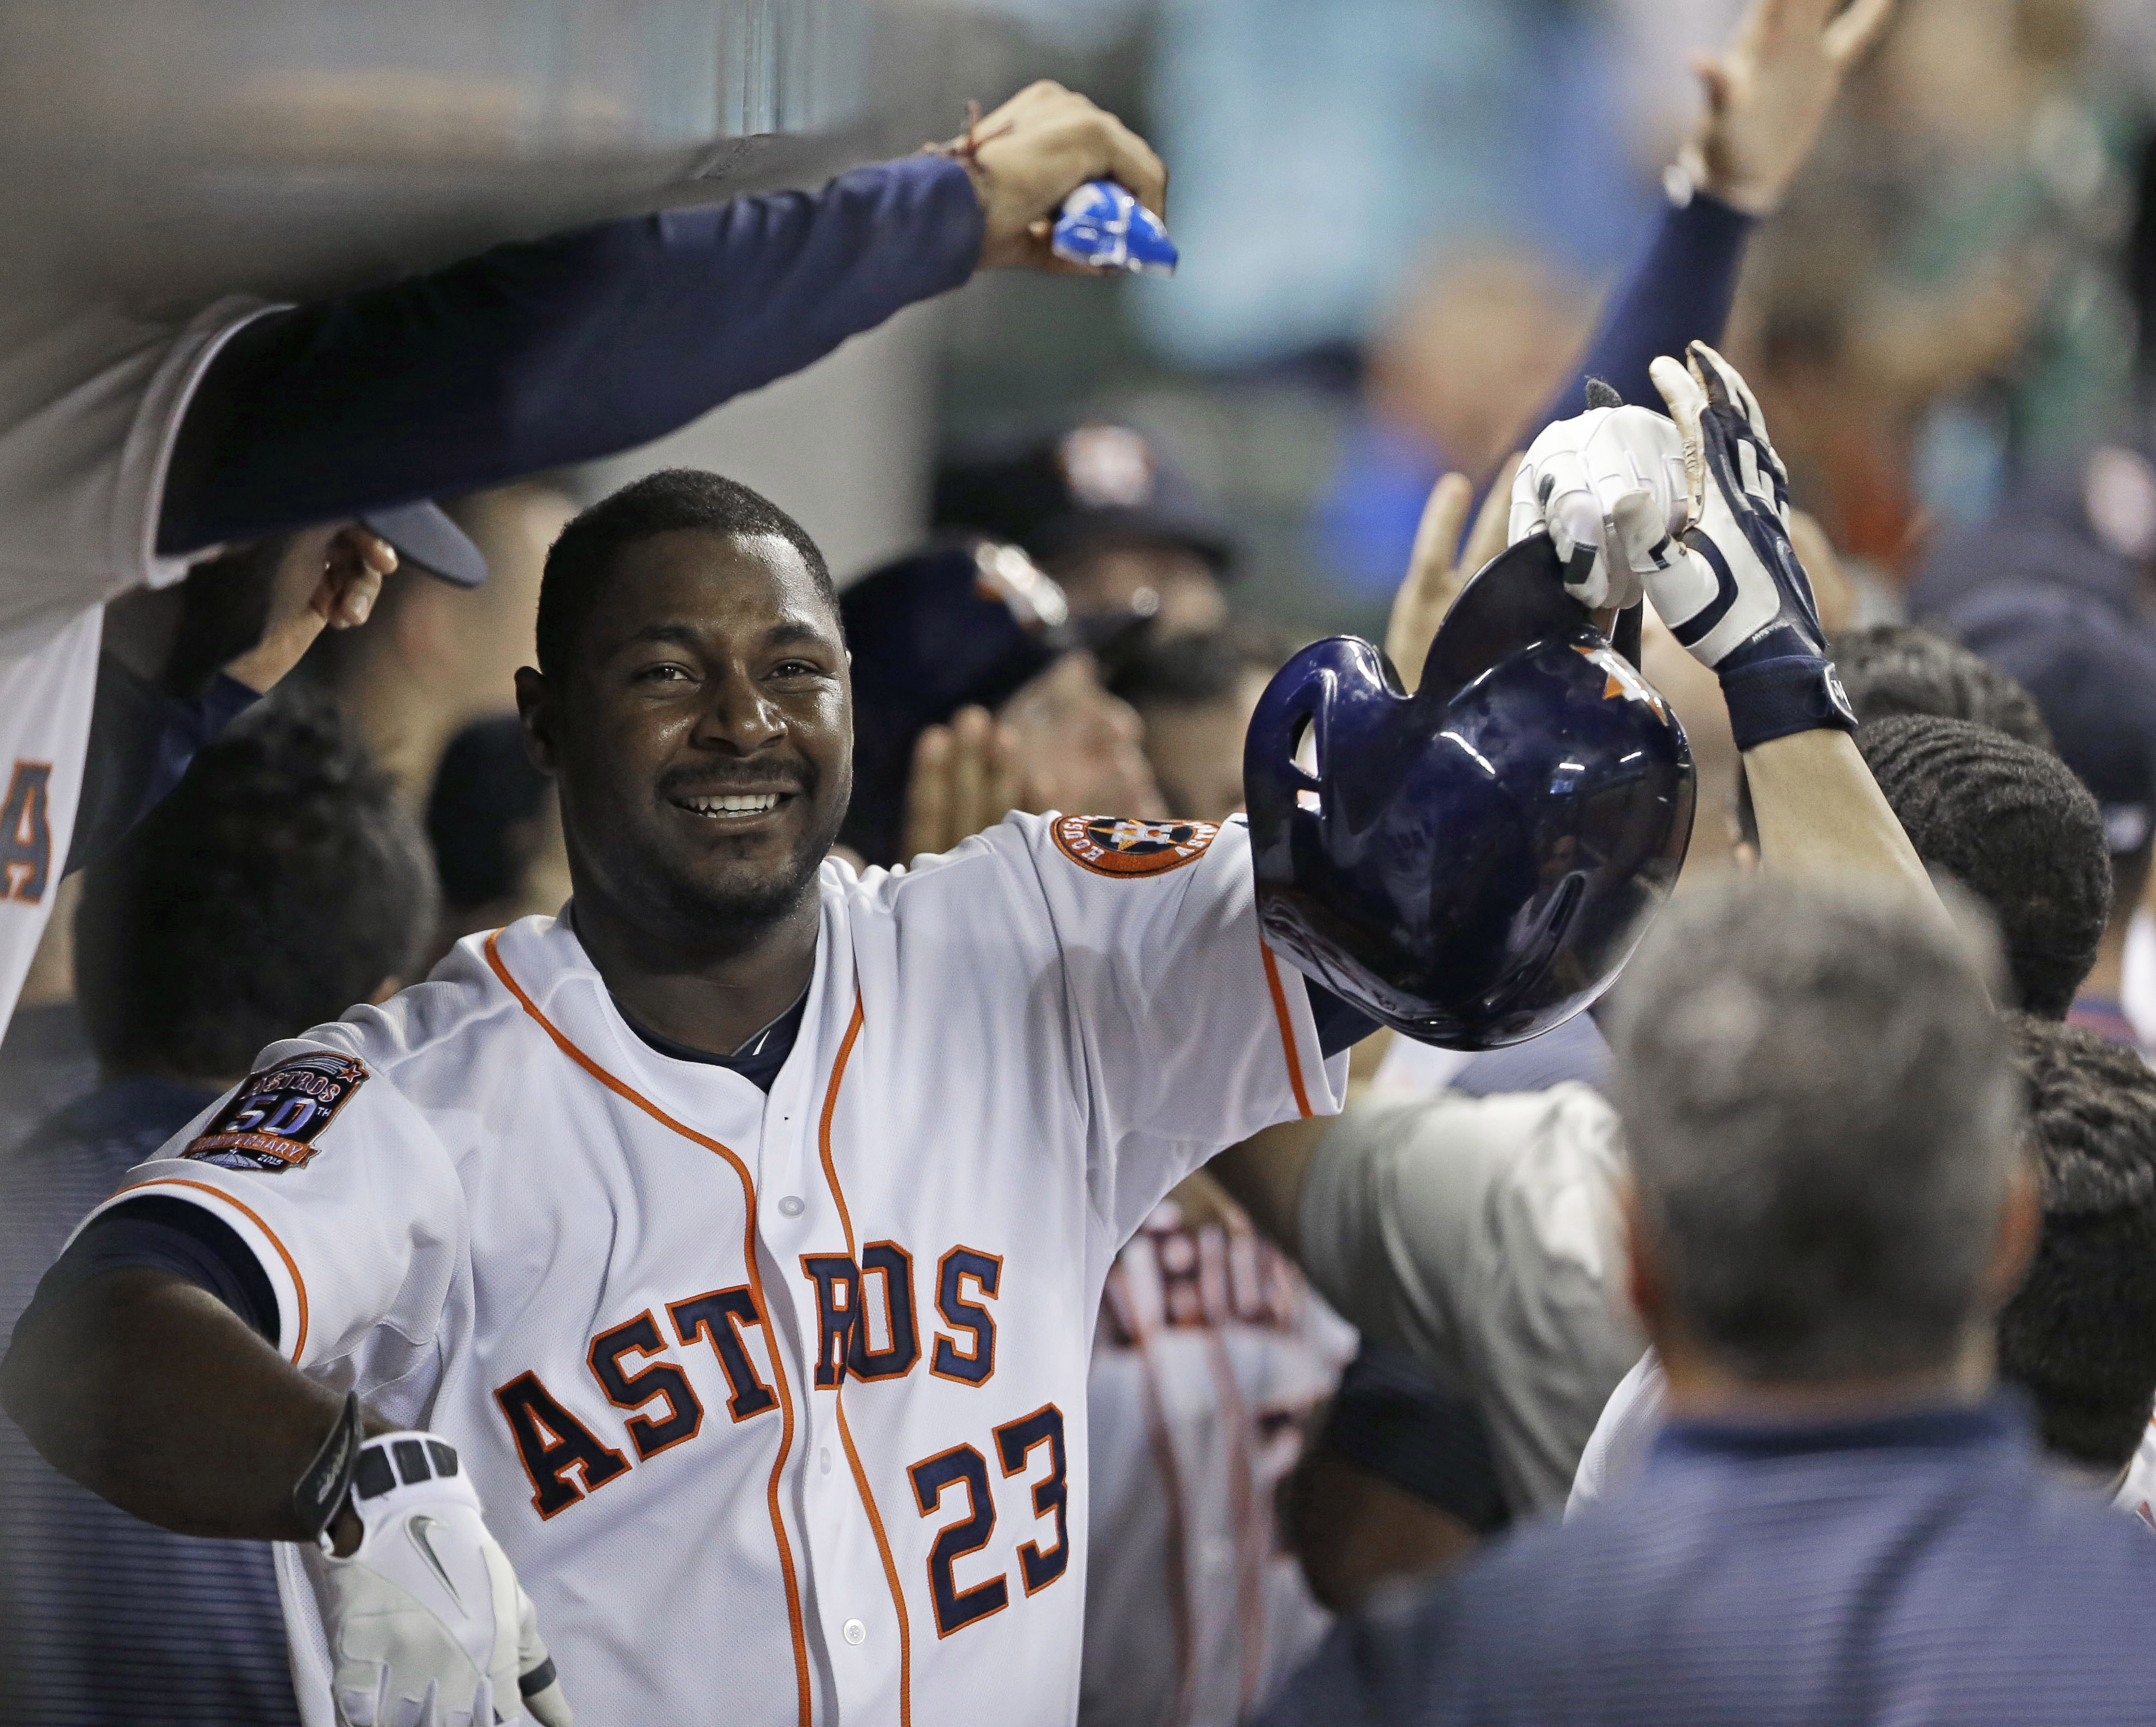 FILE - In this Saturday, May 16, 2015 file photo, Houston Astros' Chris Carter (23) is congratulated in the dugout after hitting a three-run home run against the Toronto Blue Jays in the sixth inning of a baseball game in Houston. Free-agent first baseman